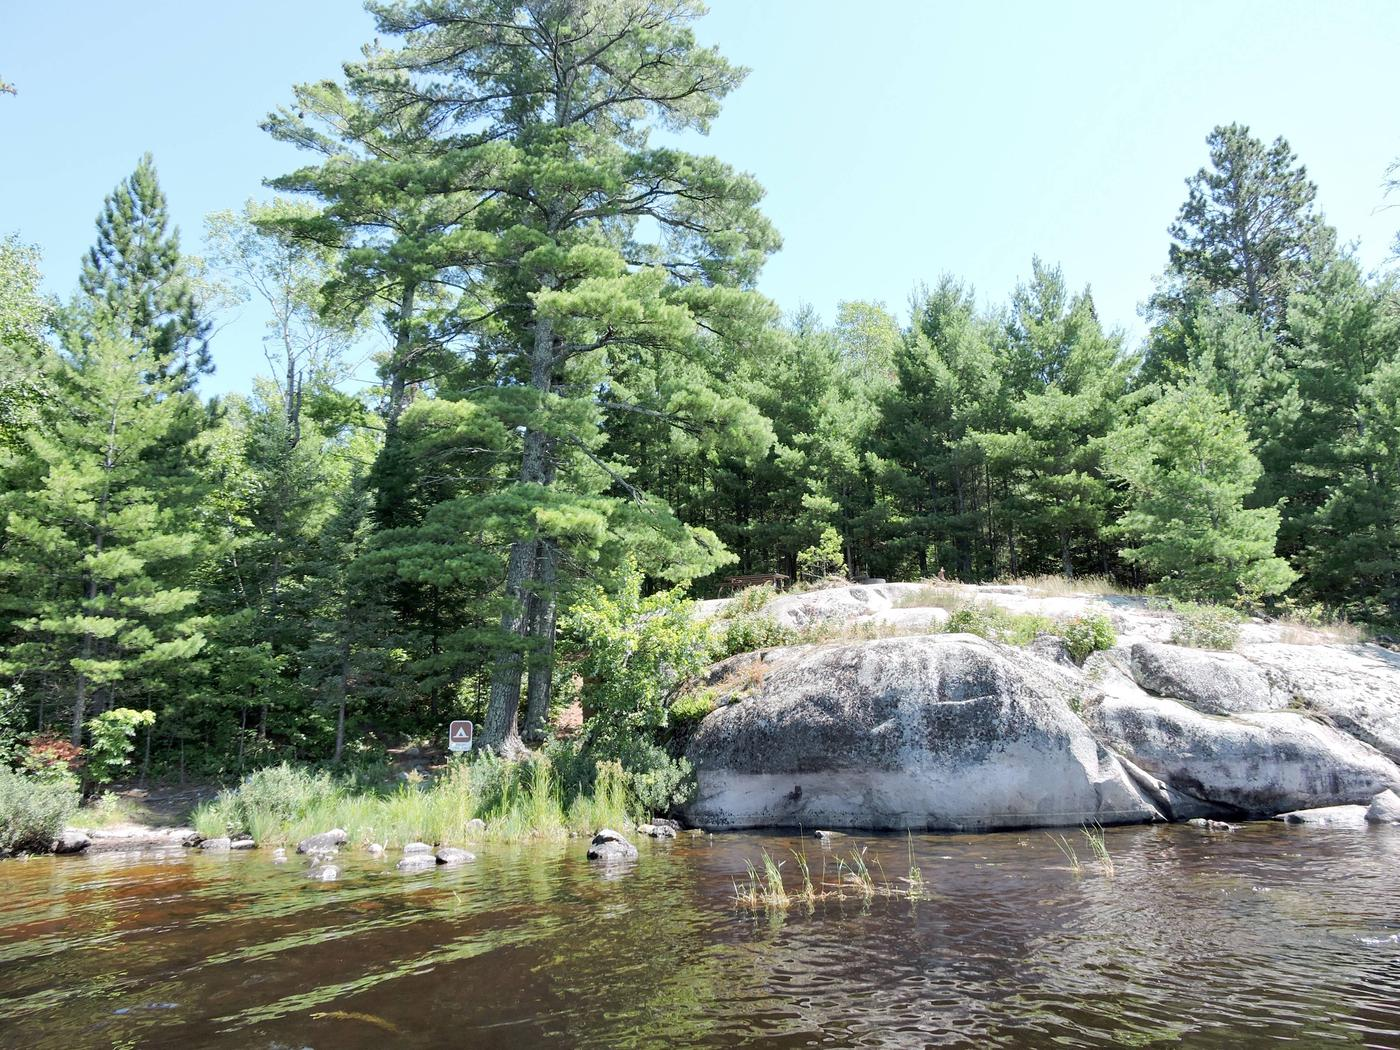 S5 - Feldt ChannelView of campsite from the water